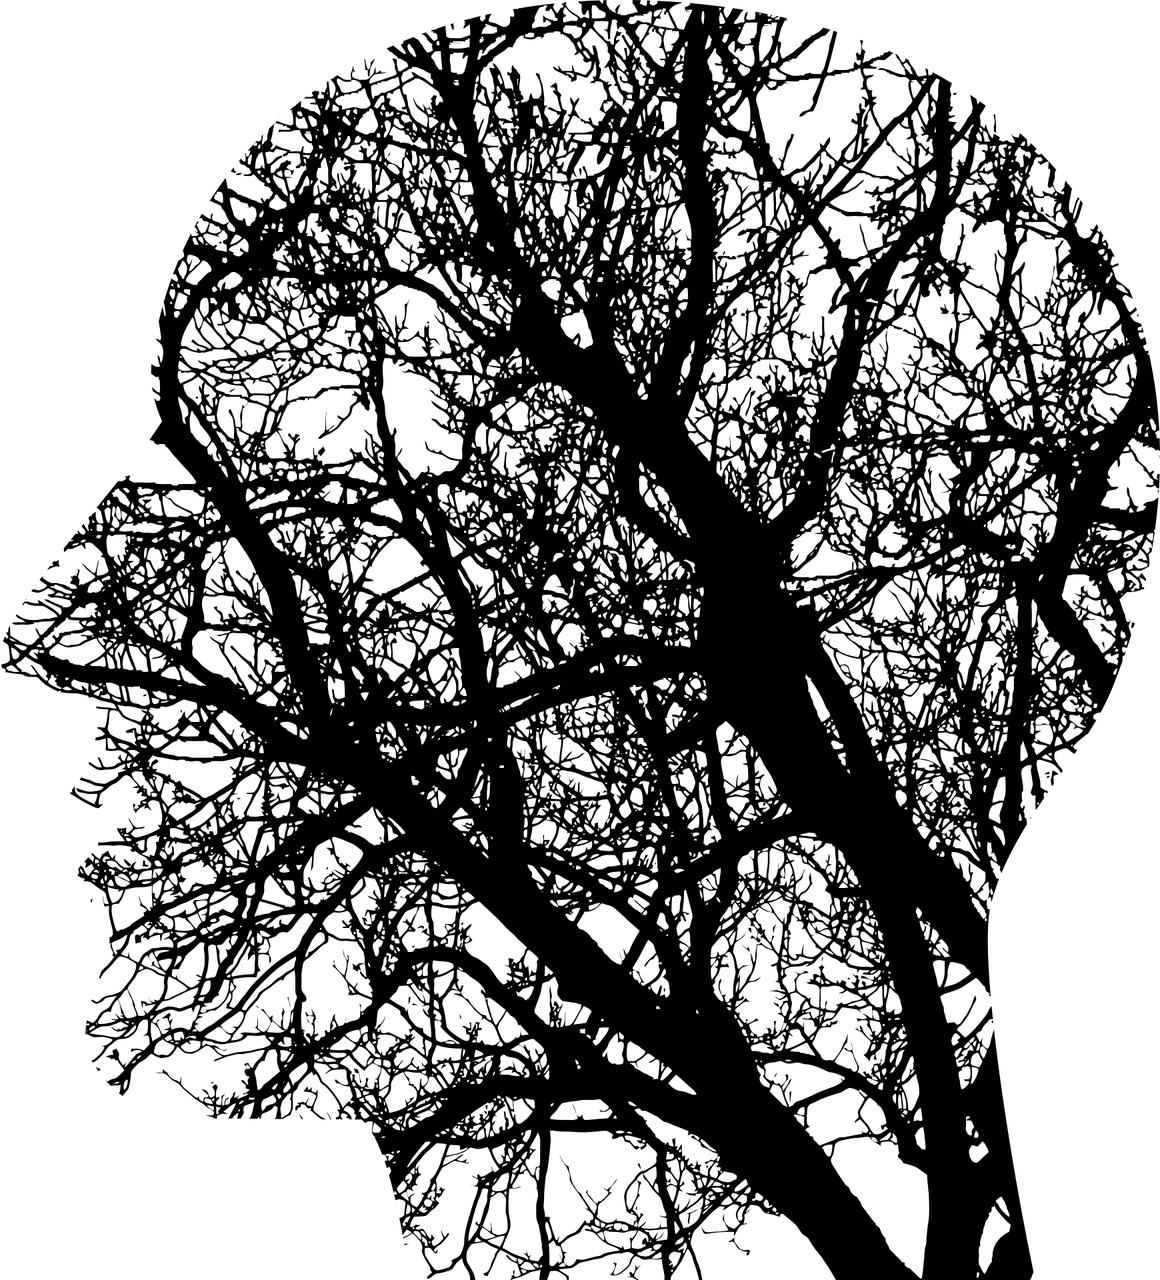 An artists illustration of a head with branches coming up.